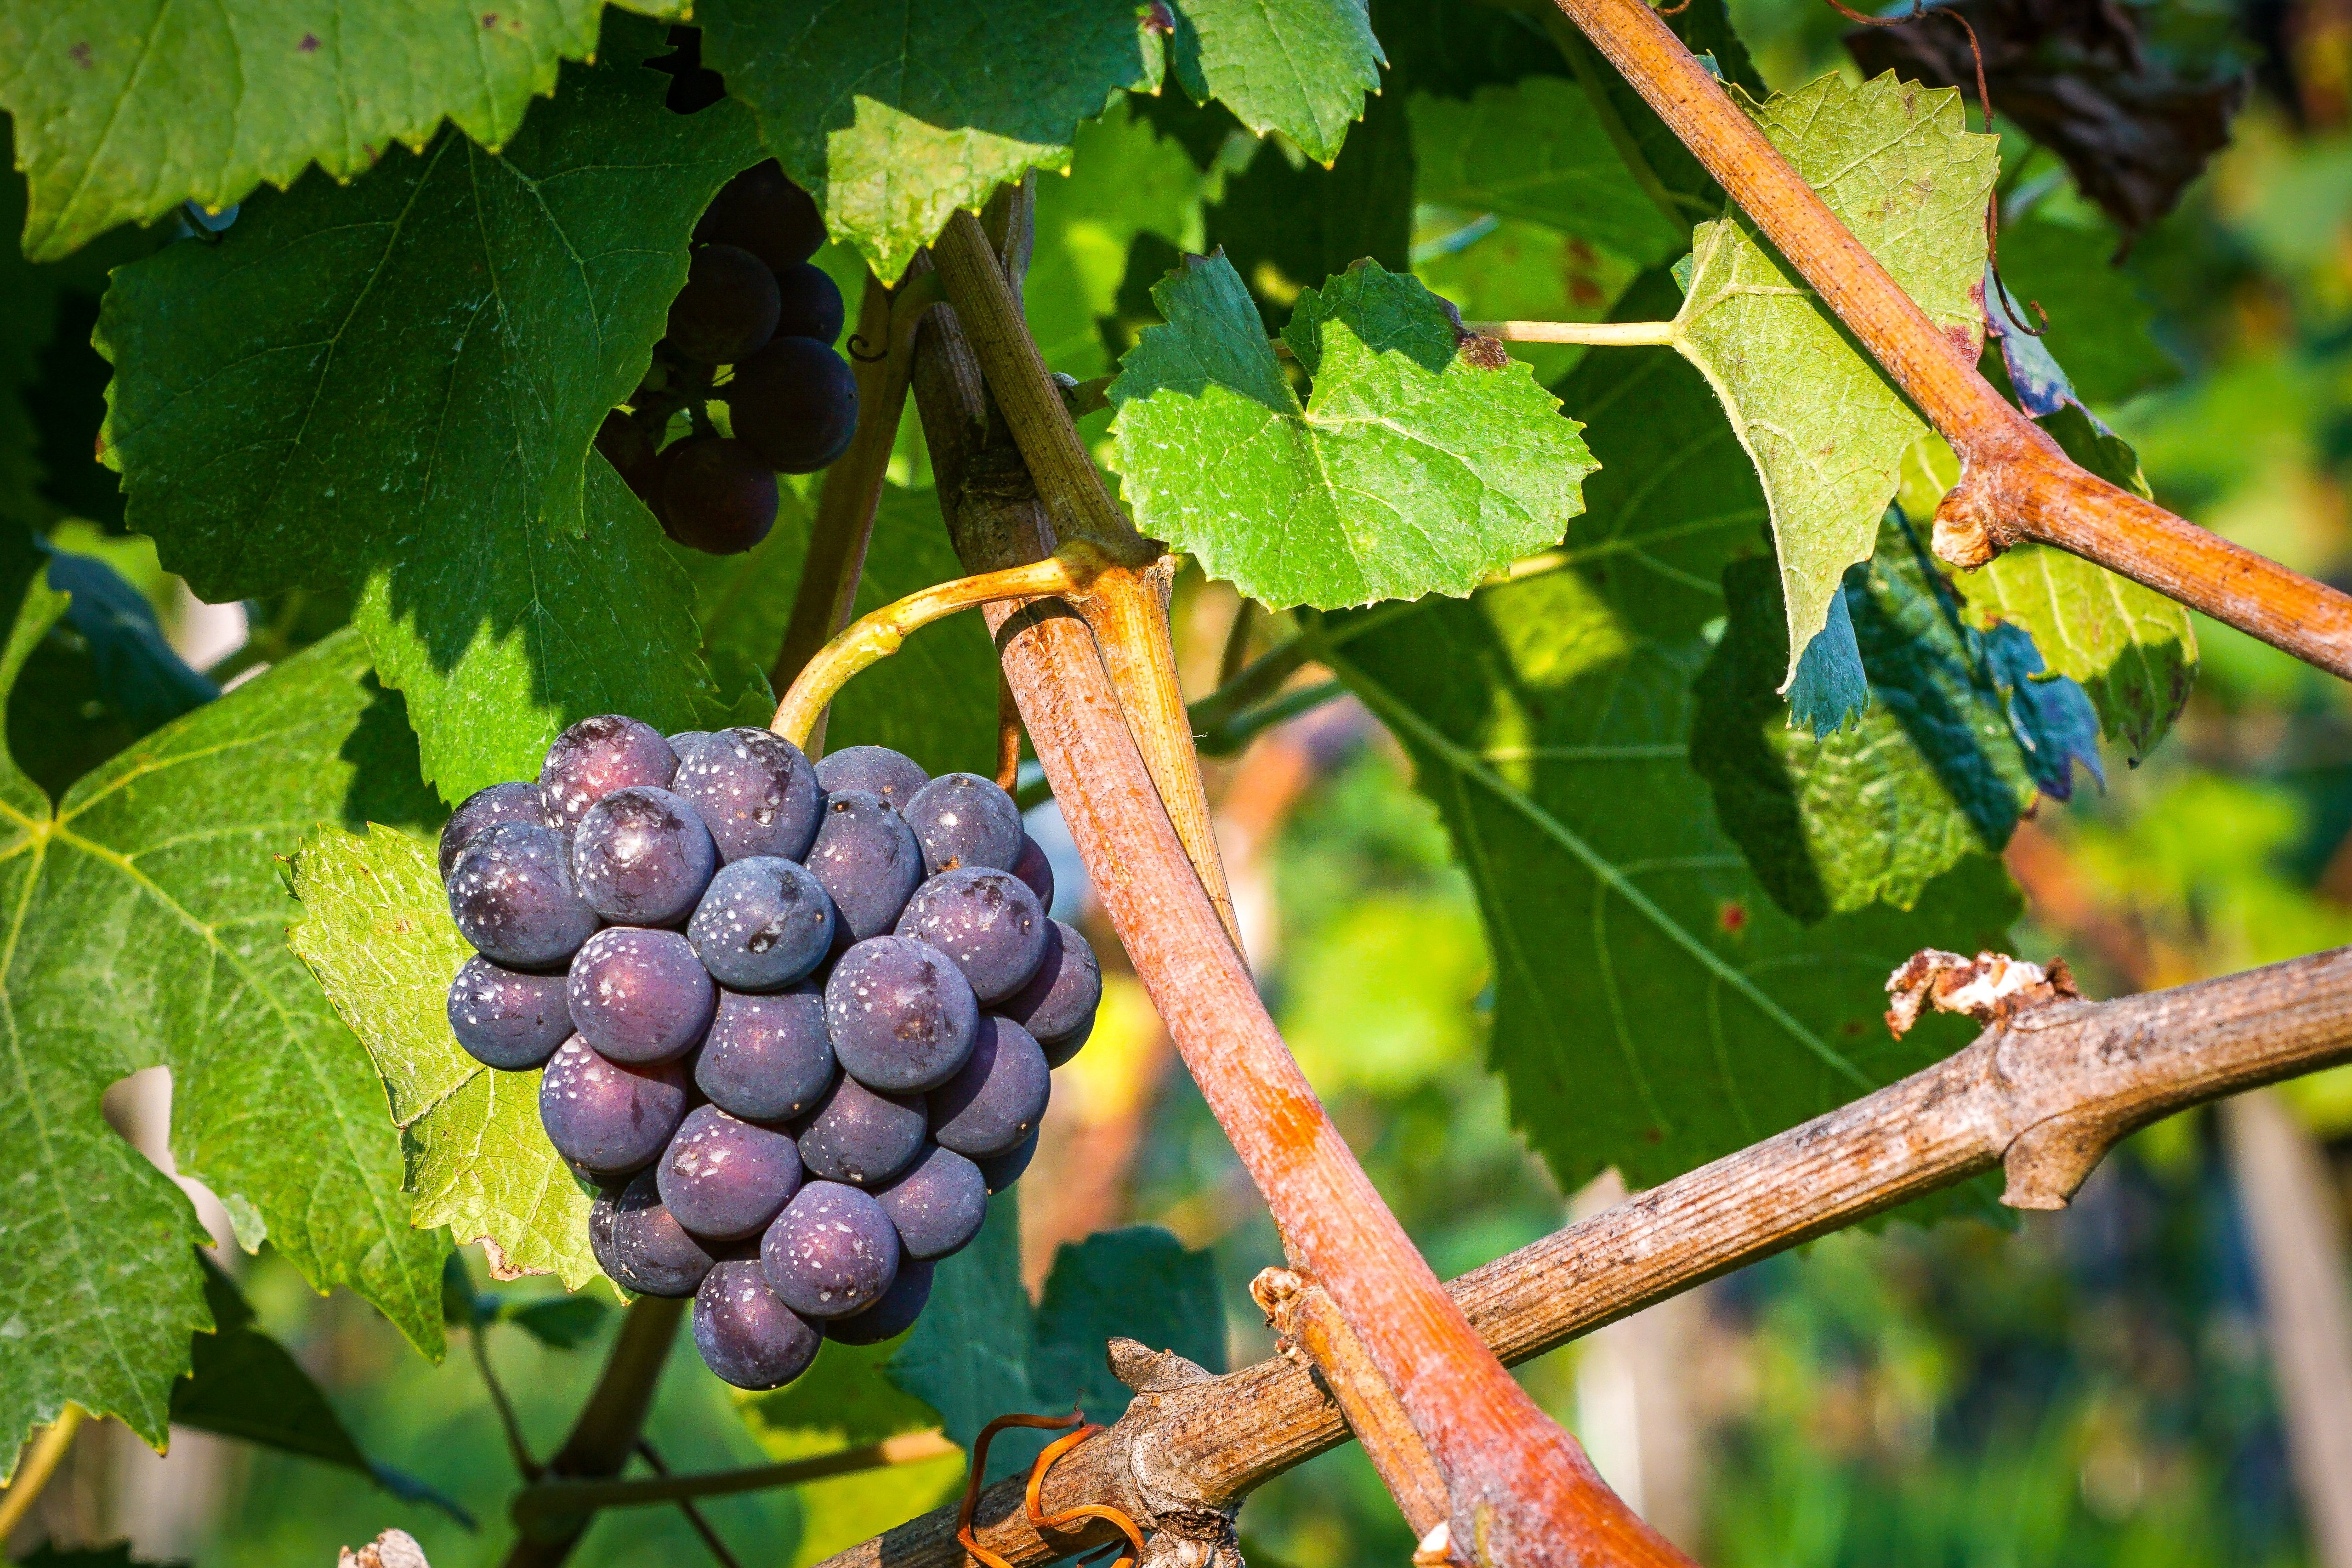 Photo of a grapevine with purple grapes on it.